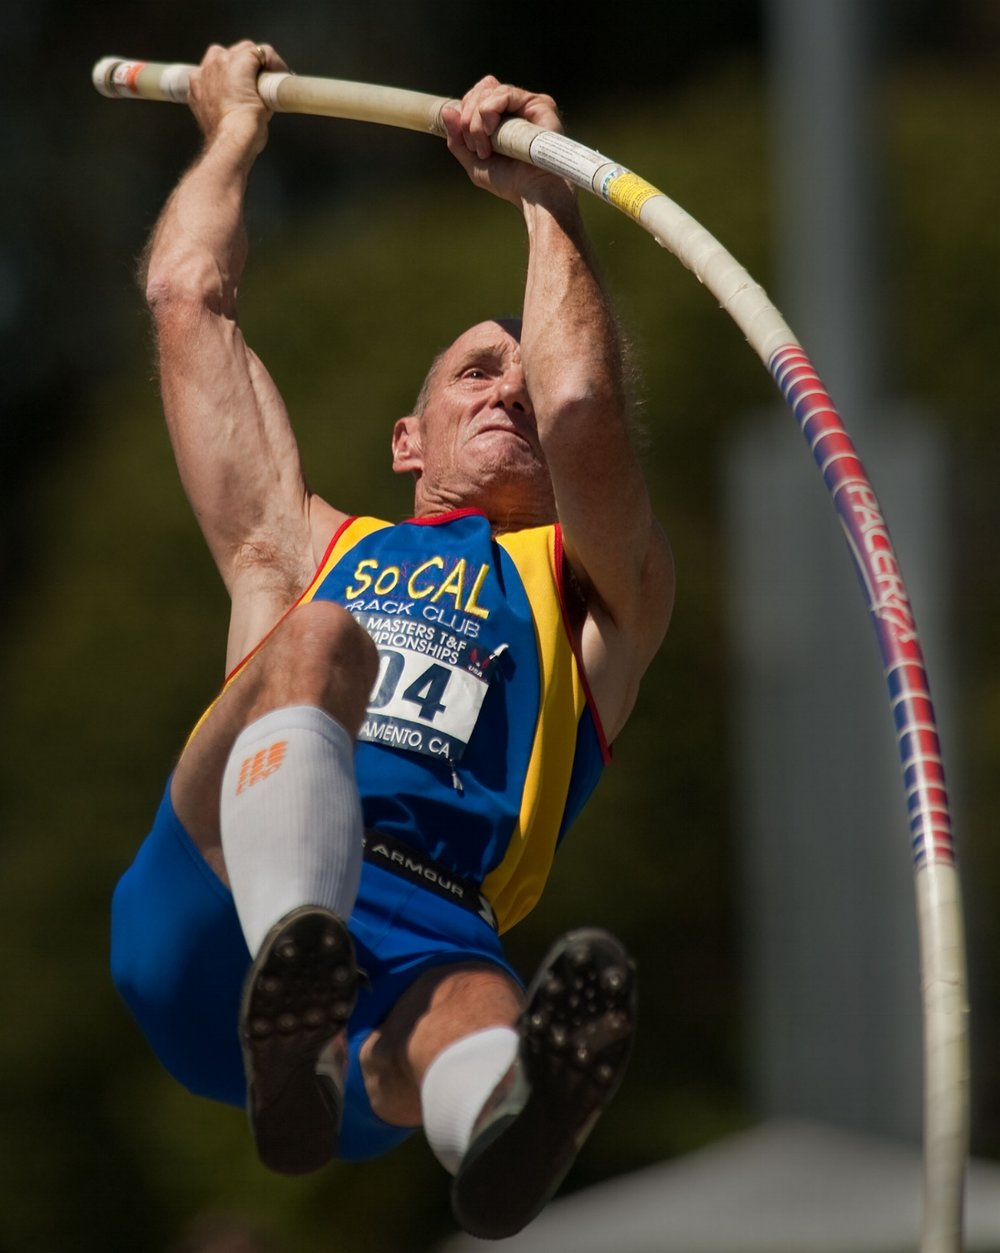 "Kirk Bentz 55 competes in the pole vault during the Masters Track and Field championship at Sac State in Sacramento on Saturday, July 24, 2010. Bentz finished second with a vault of 12' 11.5""."